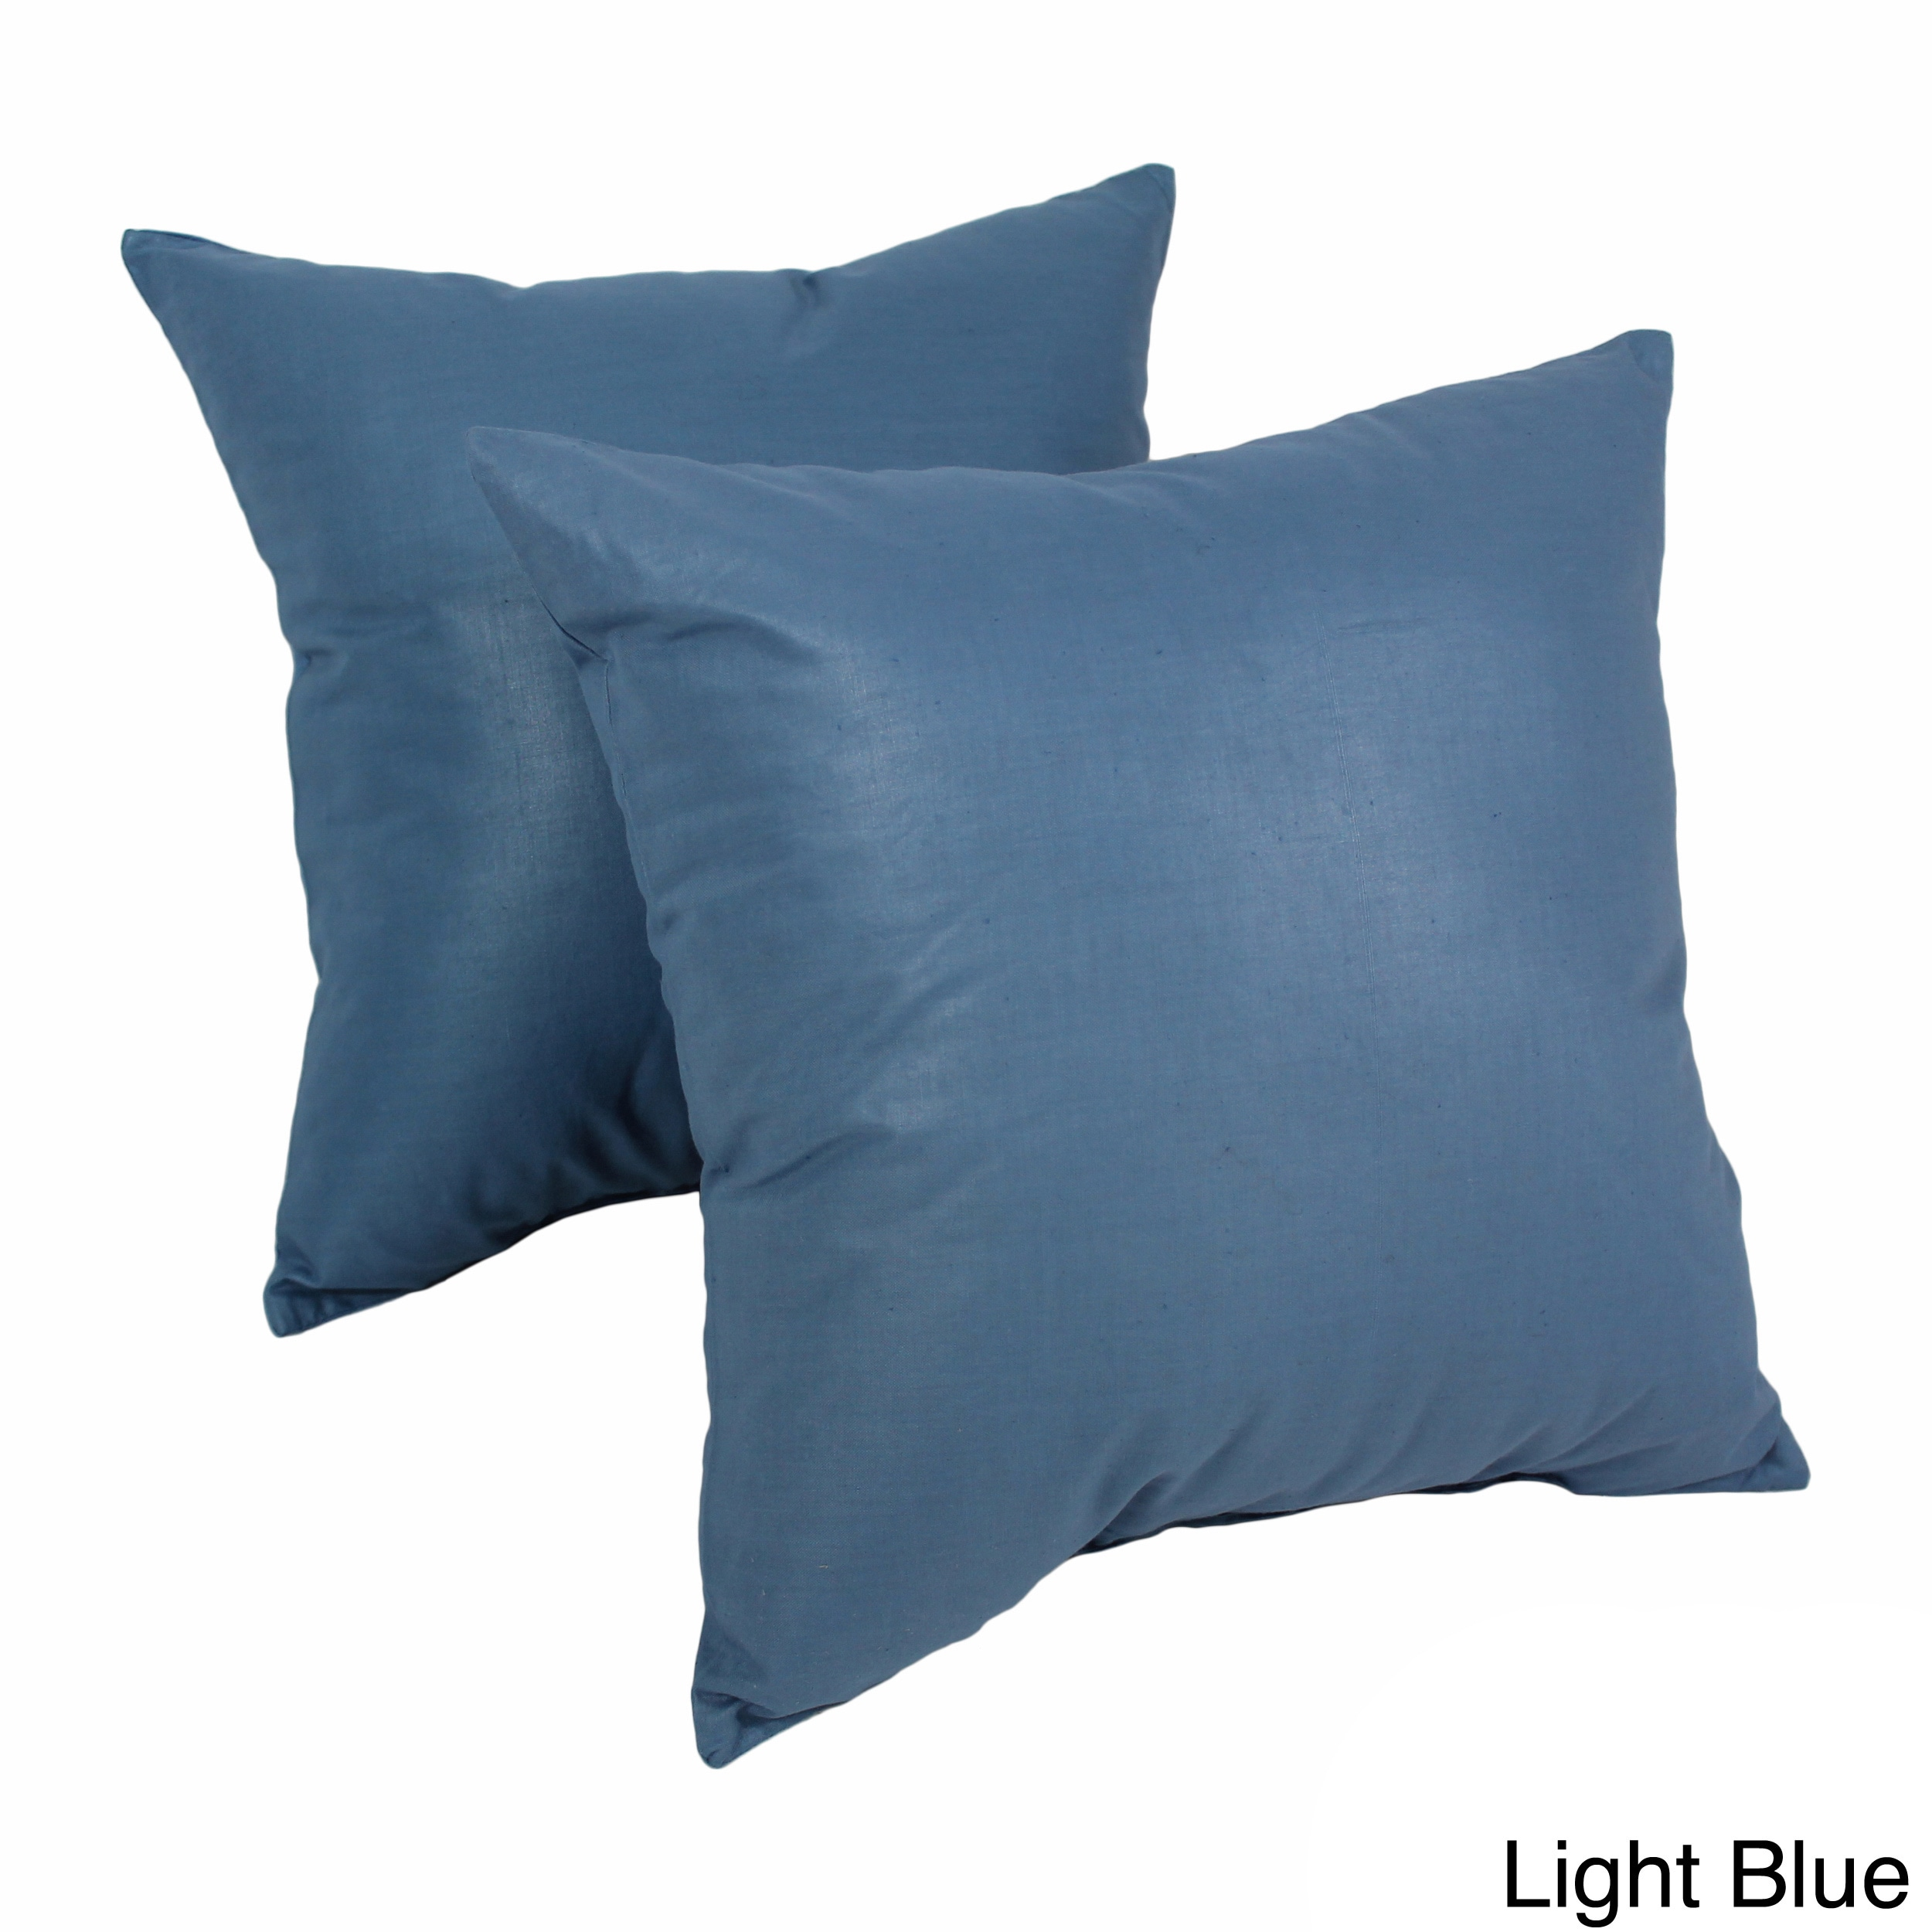 products single throw blue light or grey embroidered and pillows lizal sets pillow tan decorative